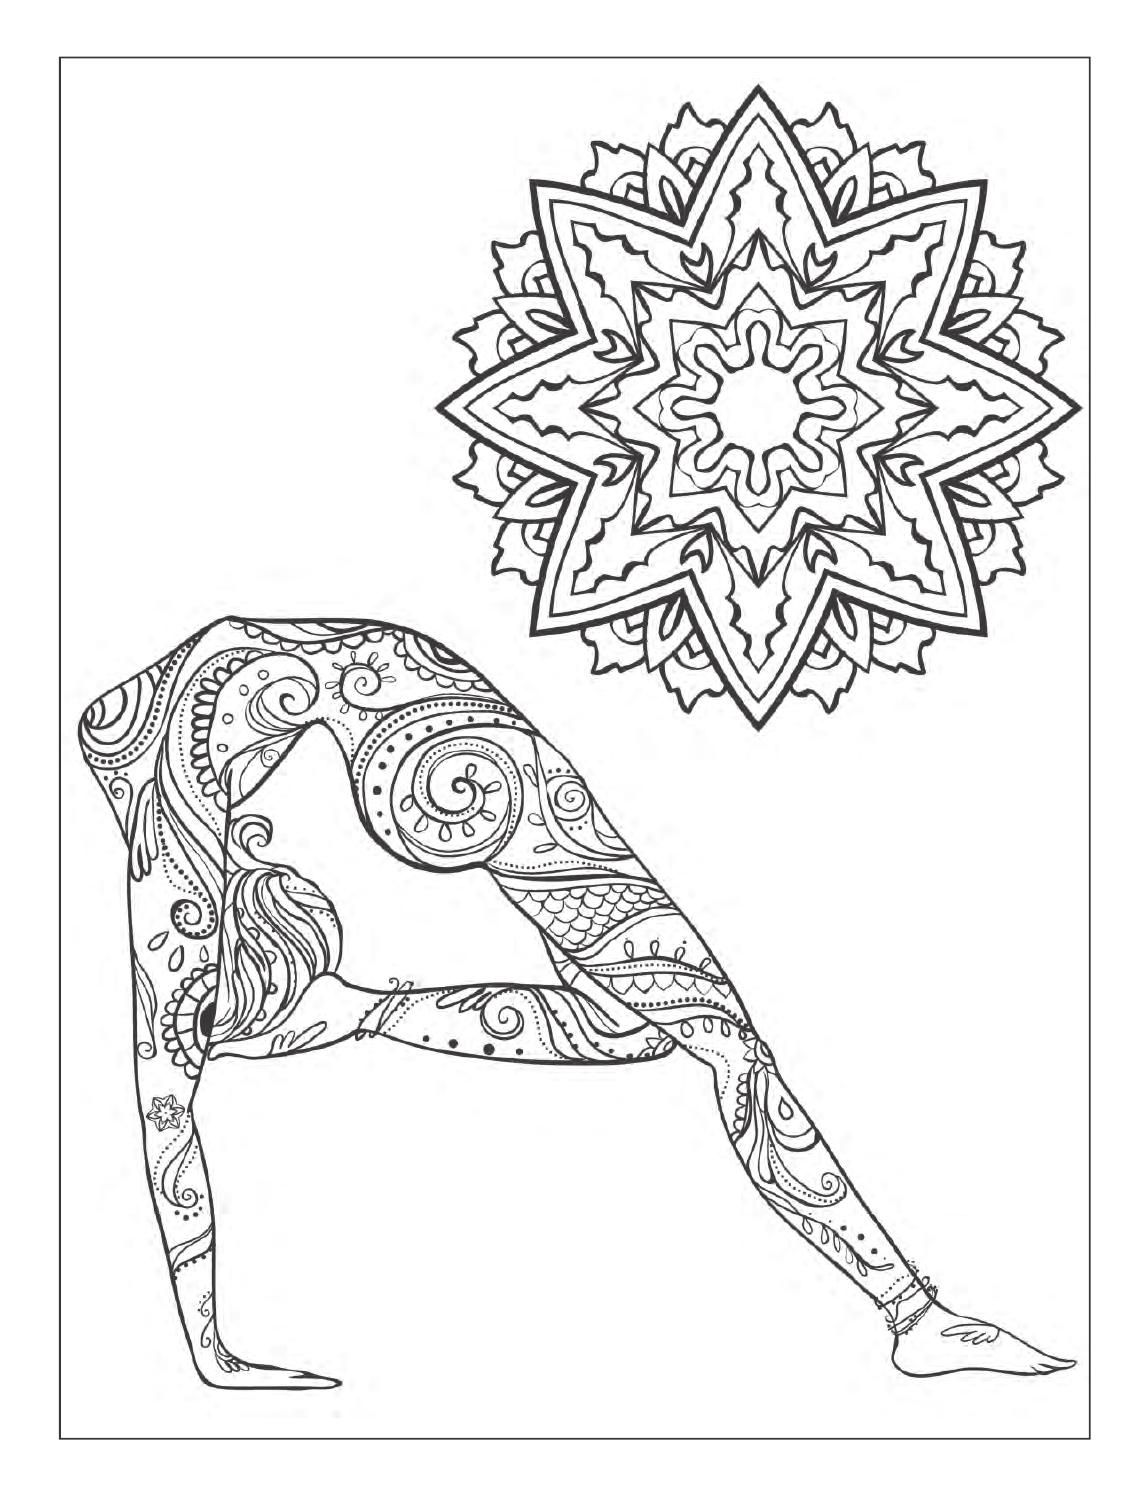 Yoga And Meditation Coloring Book For Adults With Yoga Poses And Mandalas